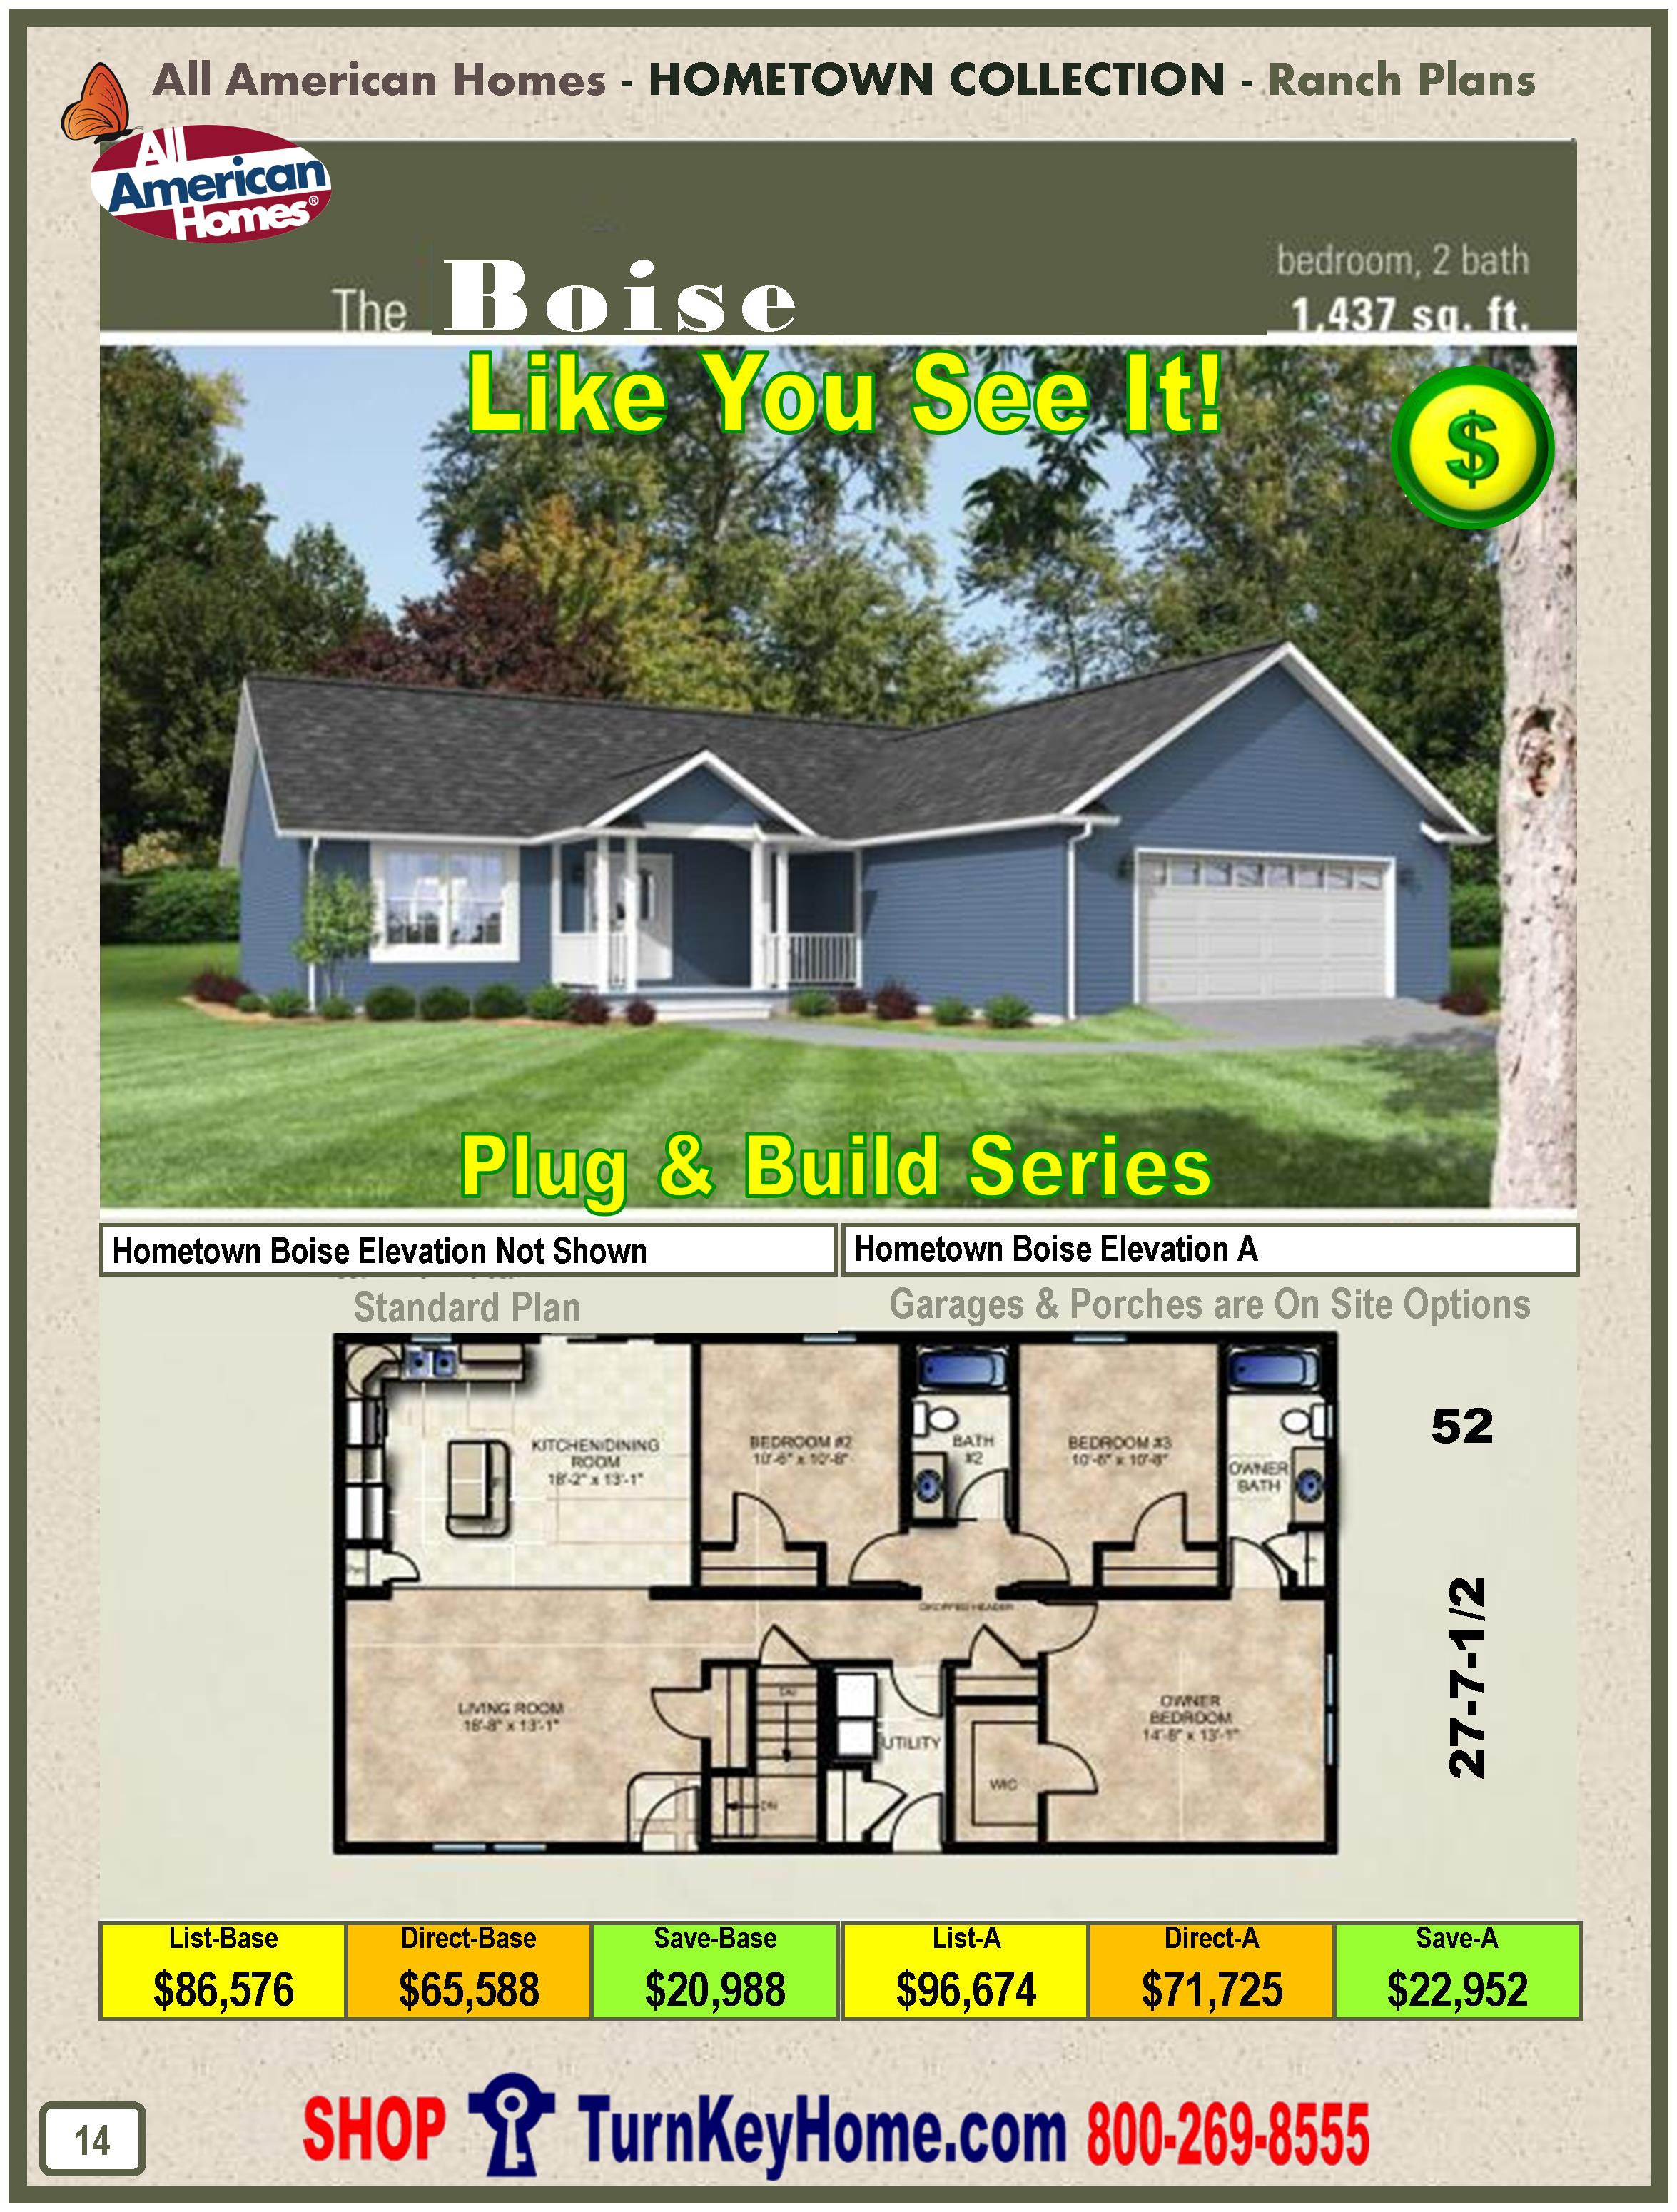 All American Homes cedar bend all american modular home hometown collection plan price